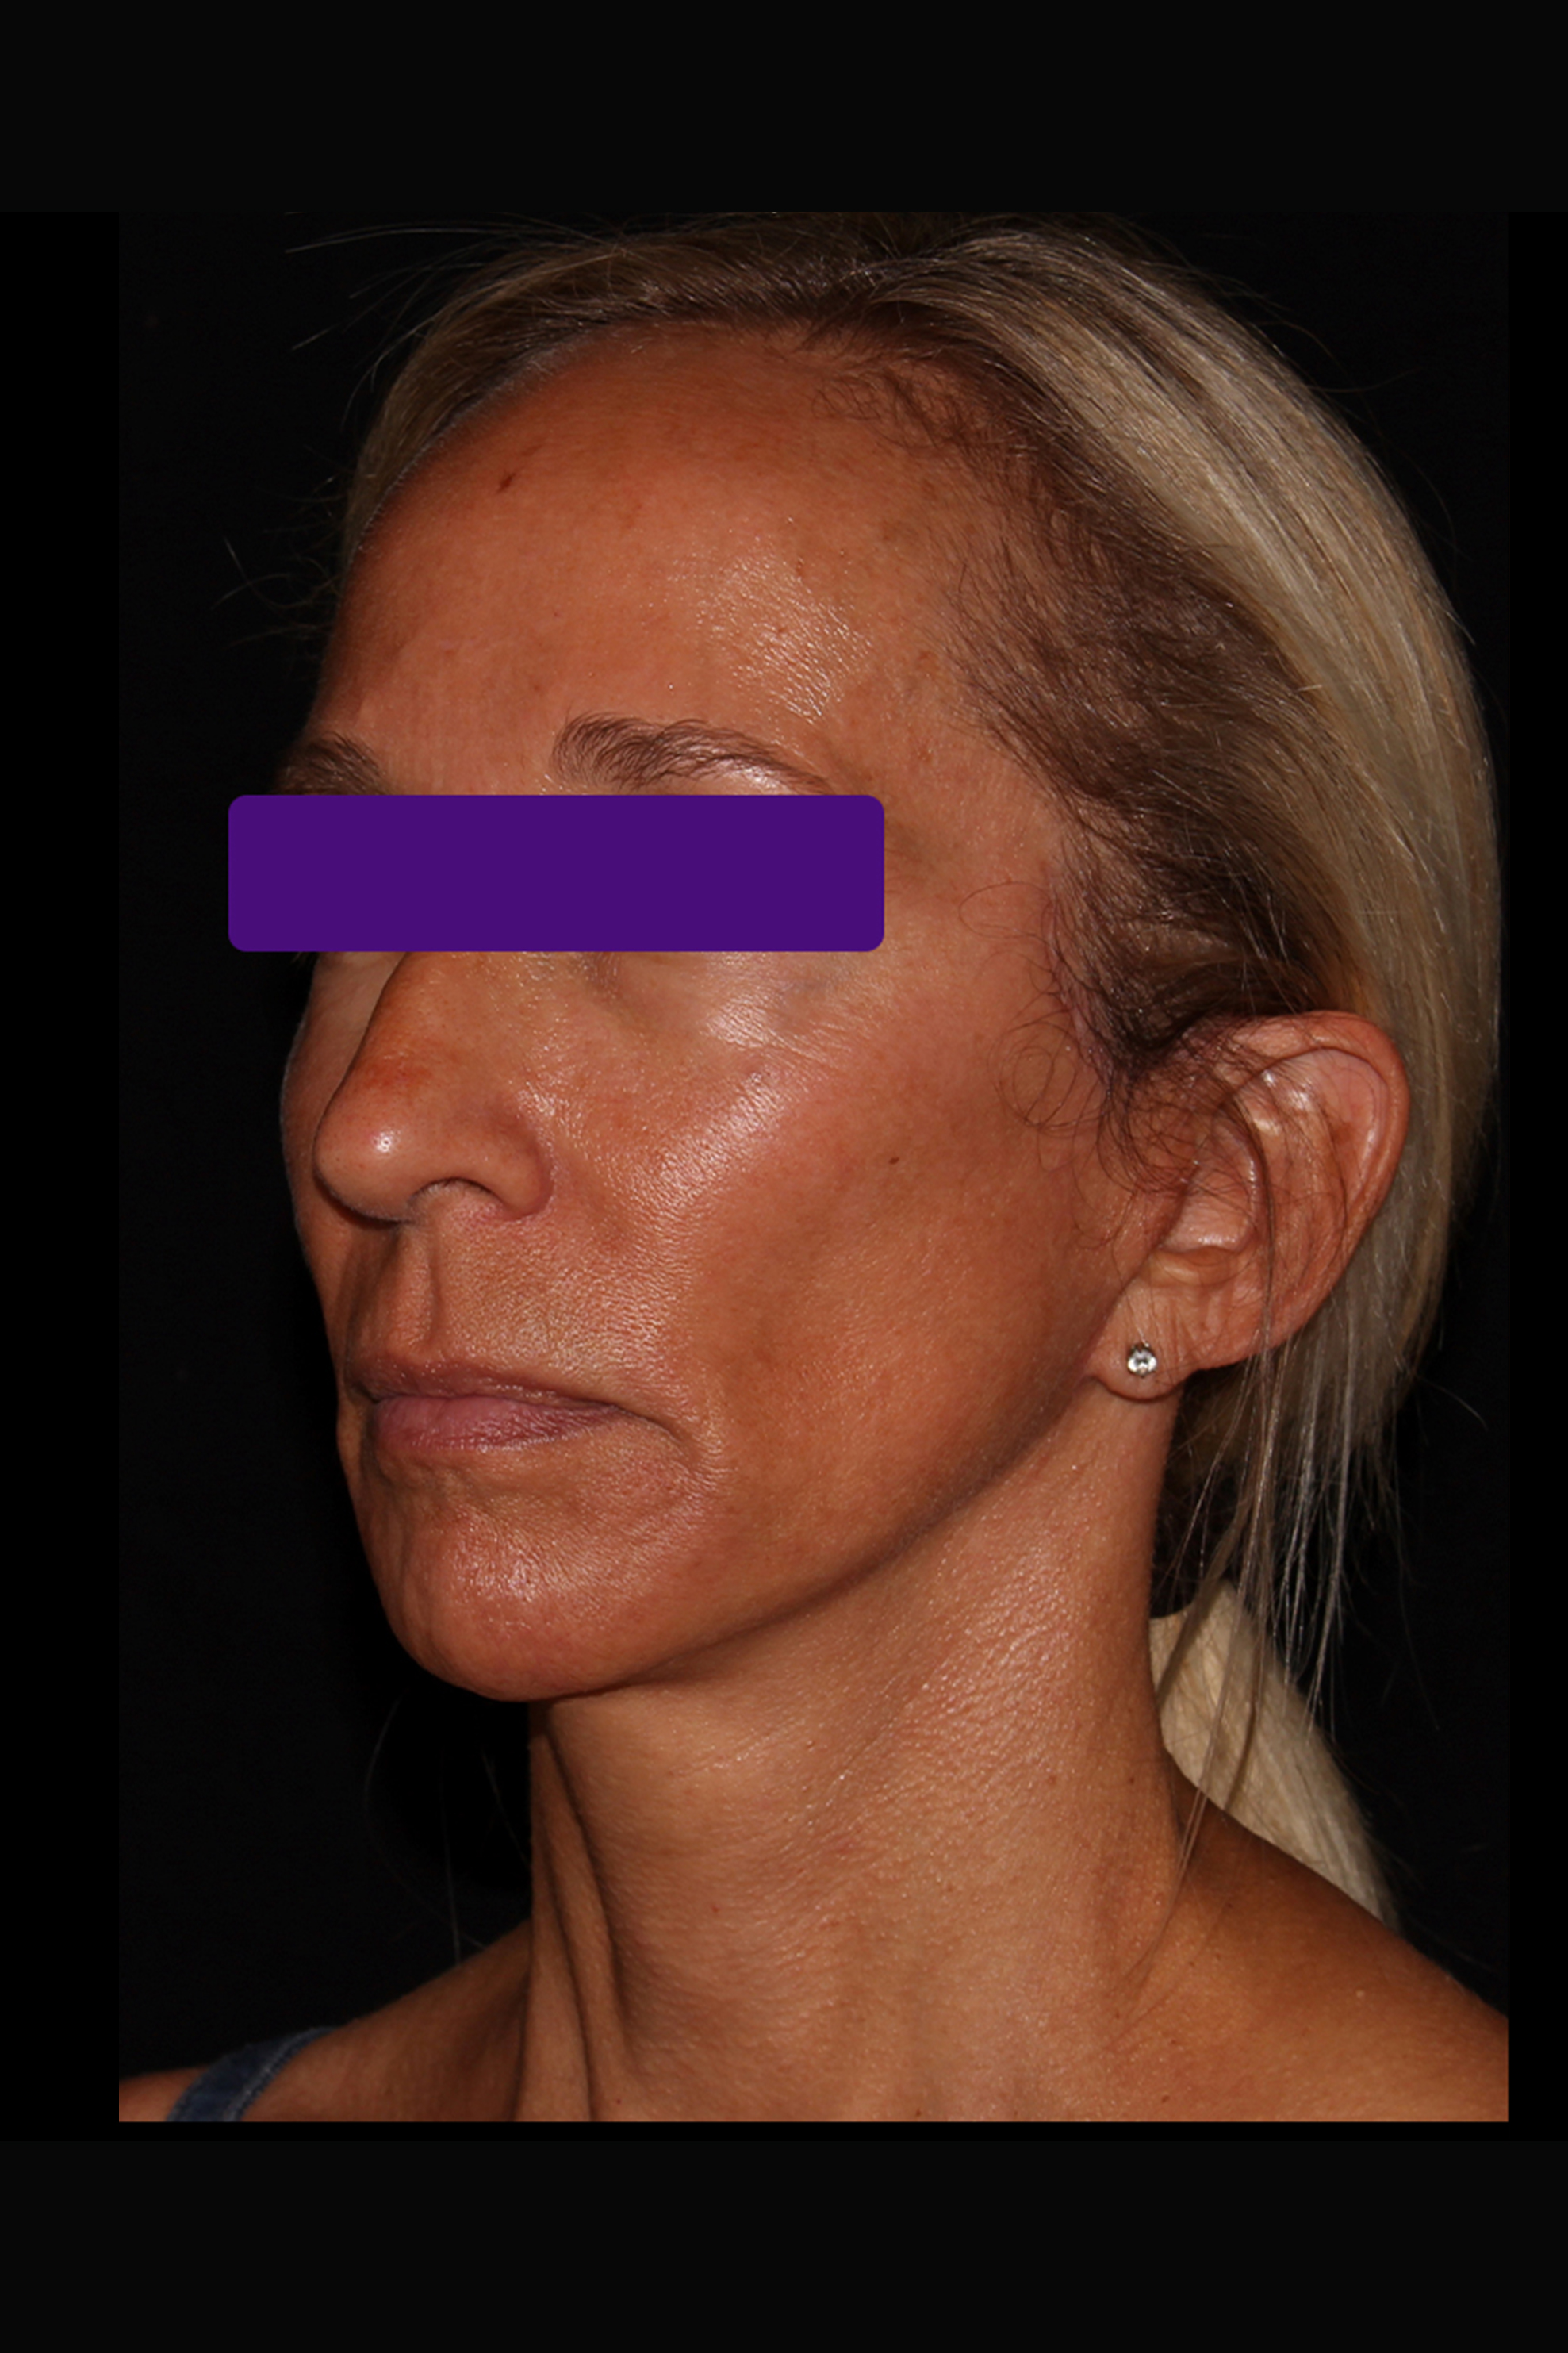 After Facelift - Less than 6 months post-op